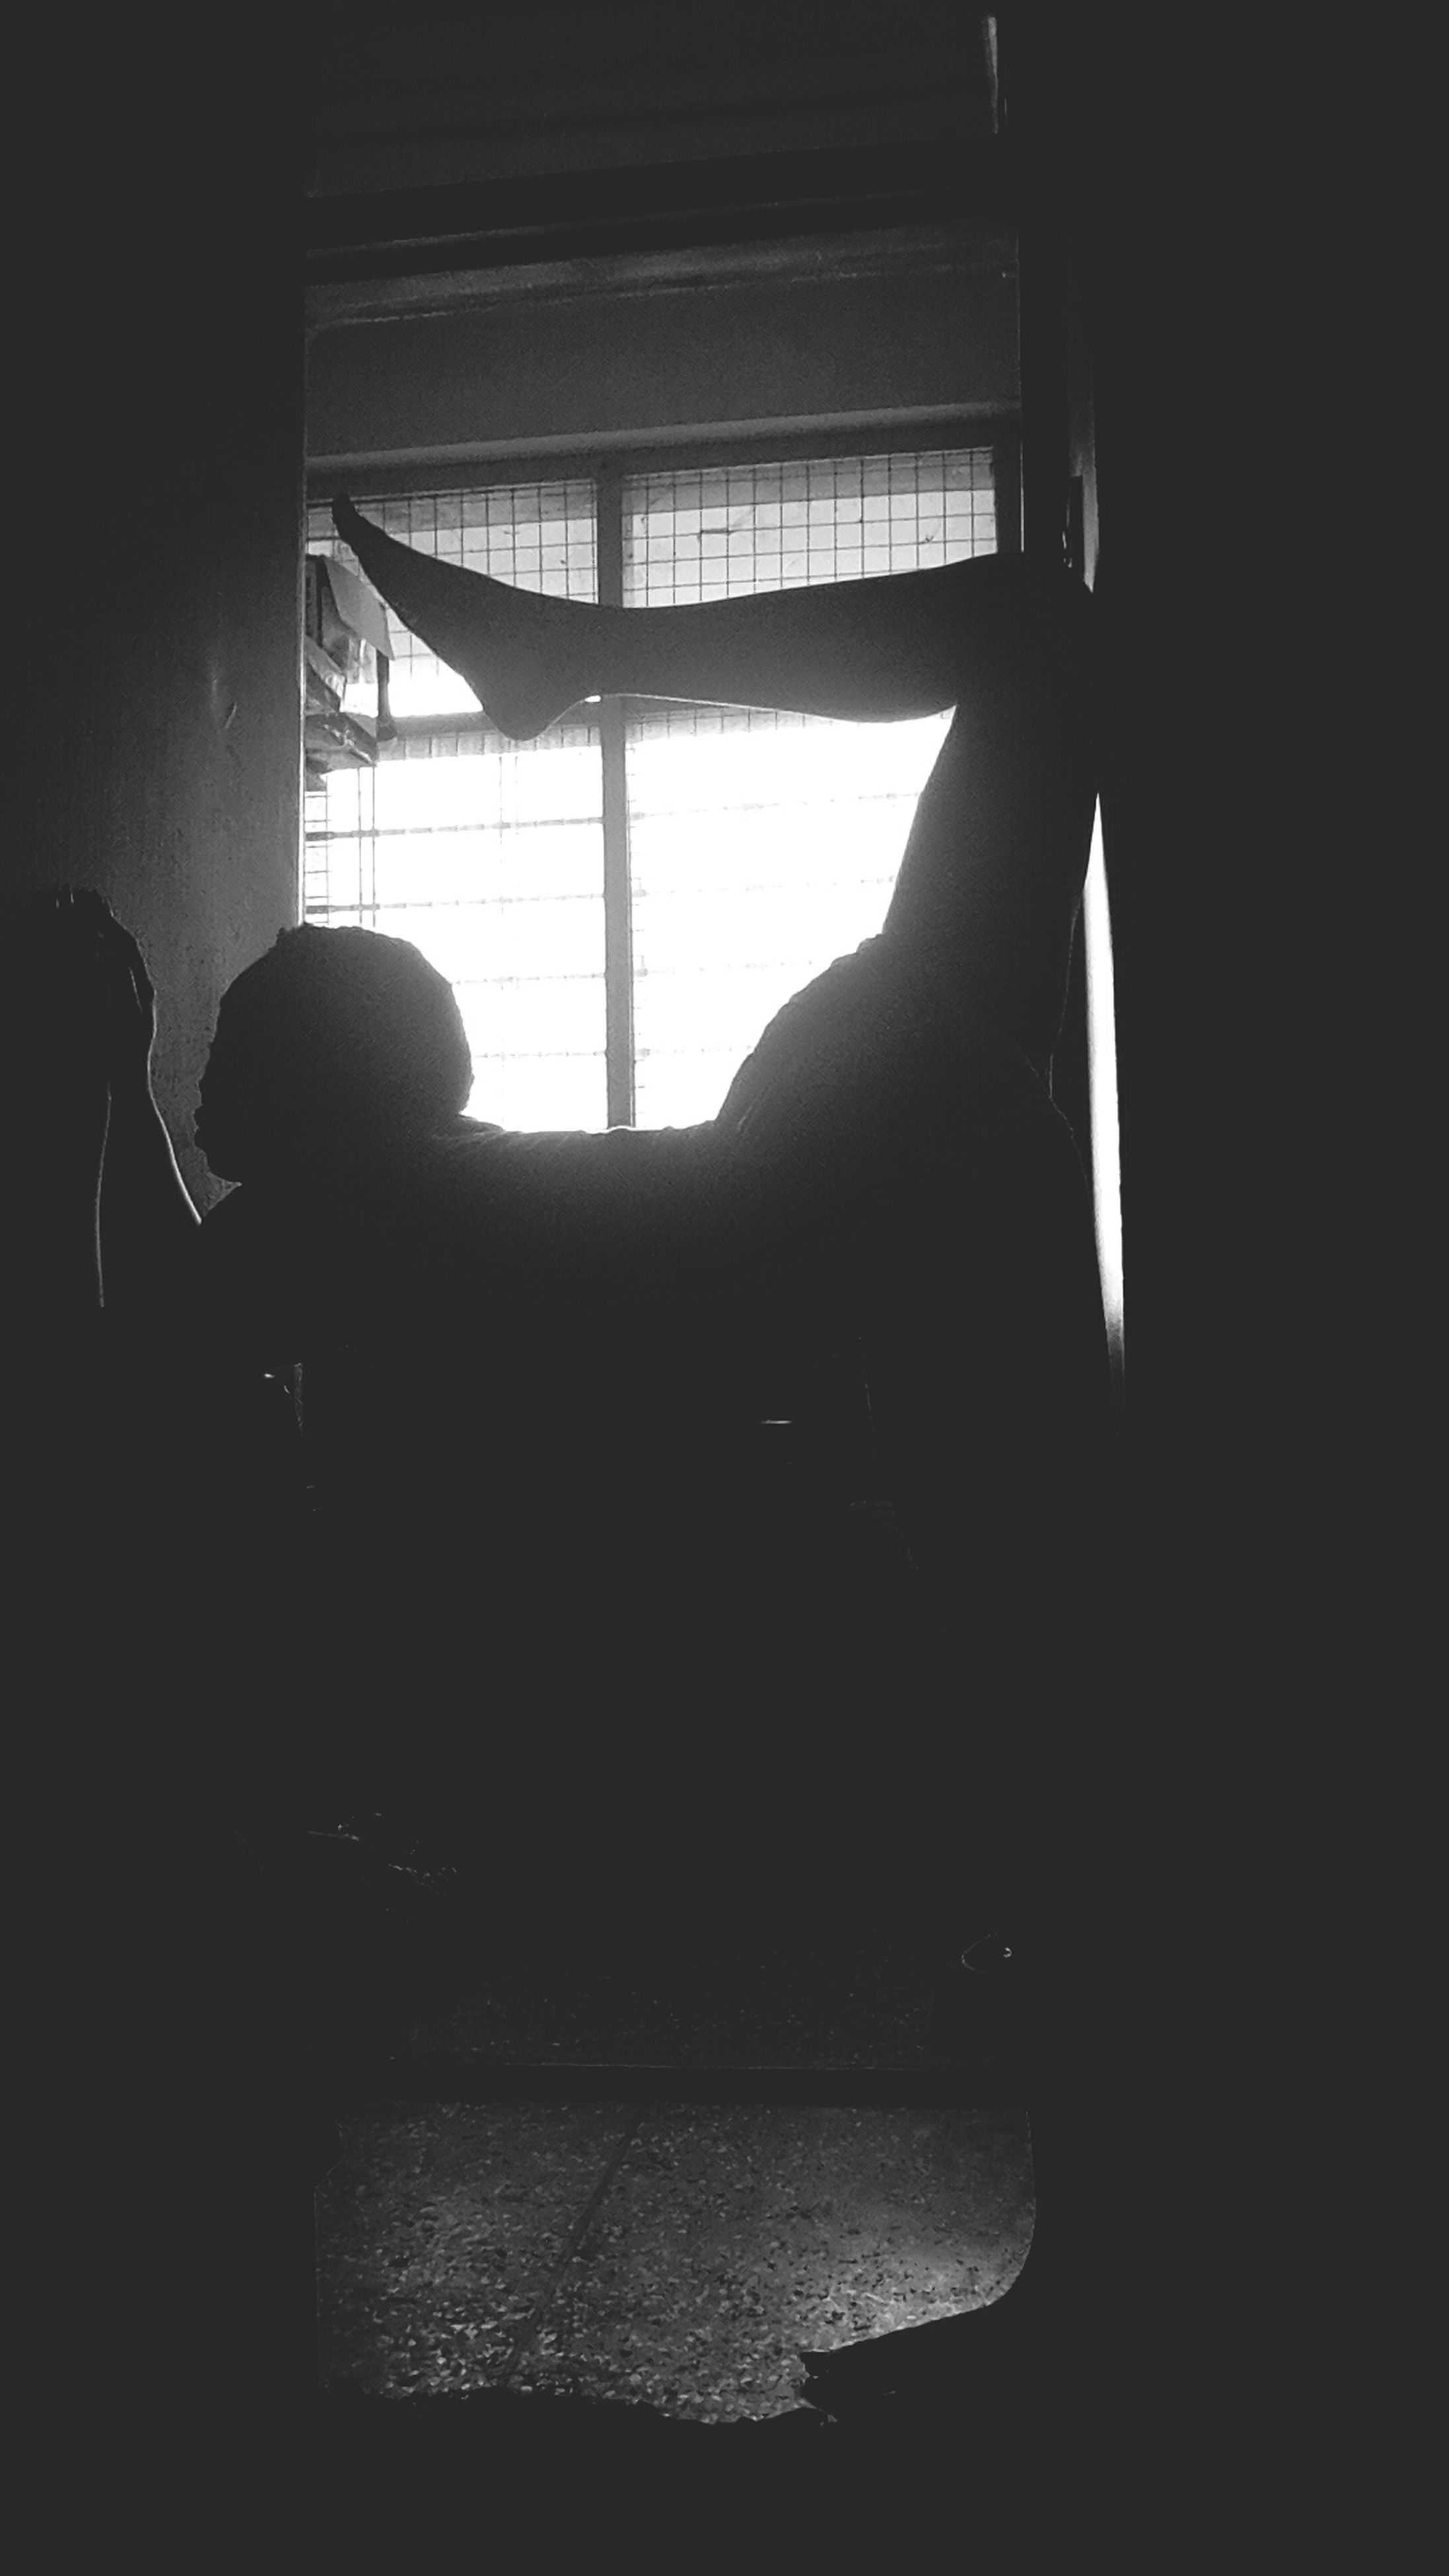 indoors, window, silhouette, lifestyles, sitting, dark, men, home interior, sunlight, person, looking through window, leisure activity, relaxation, glass - material, transparent, side view, standing, rear view